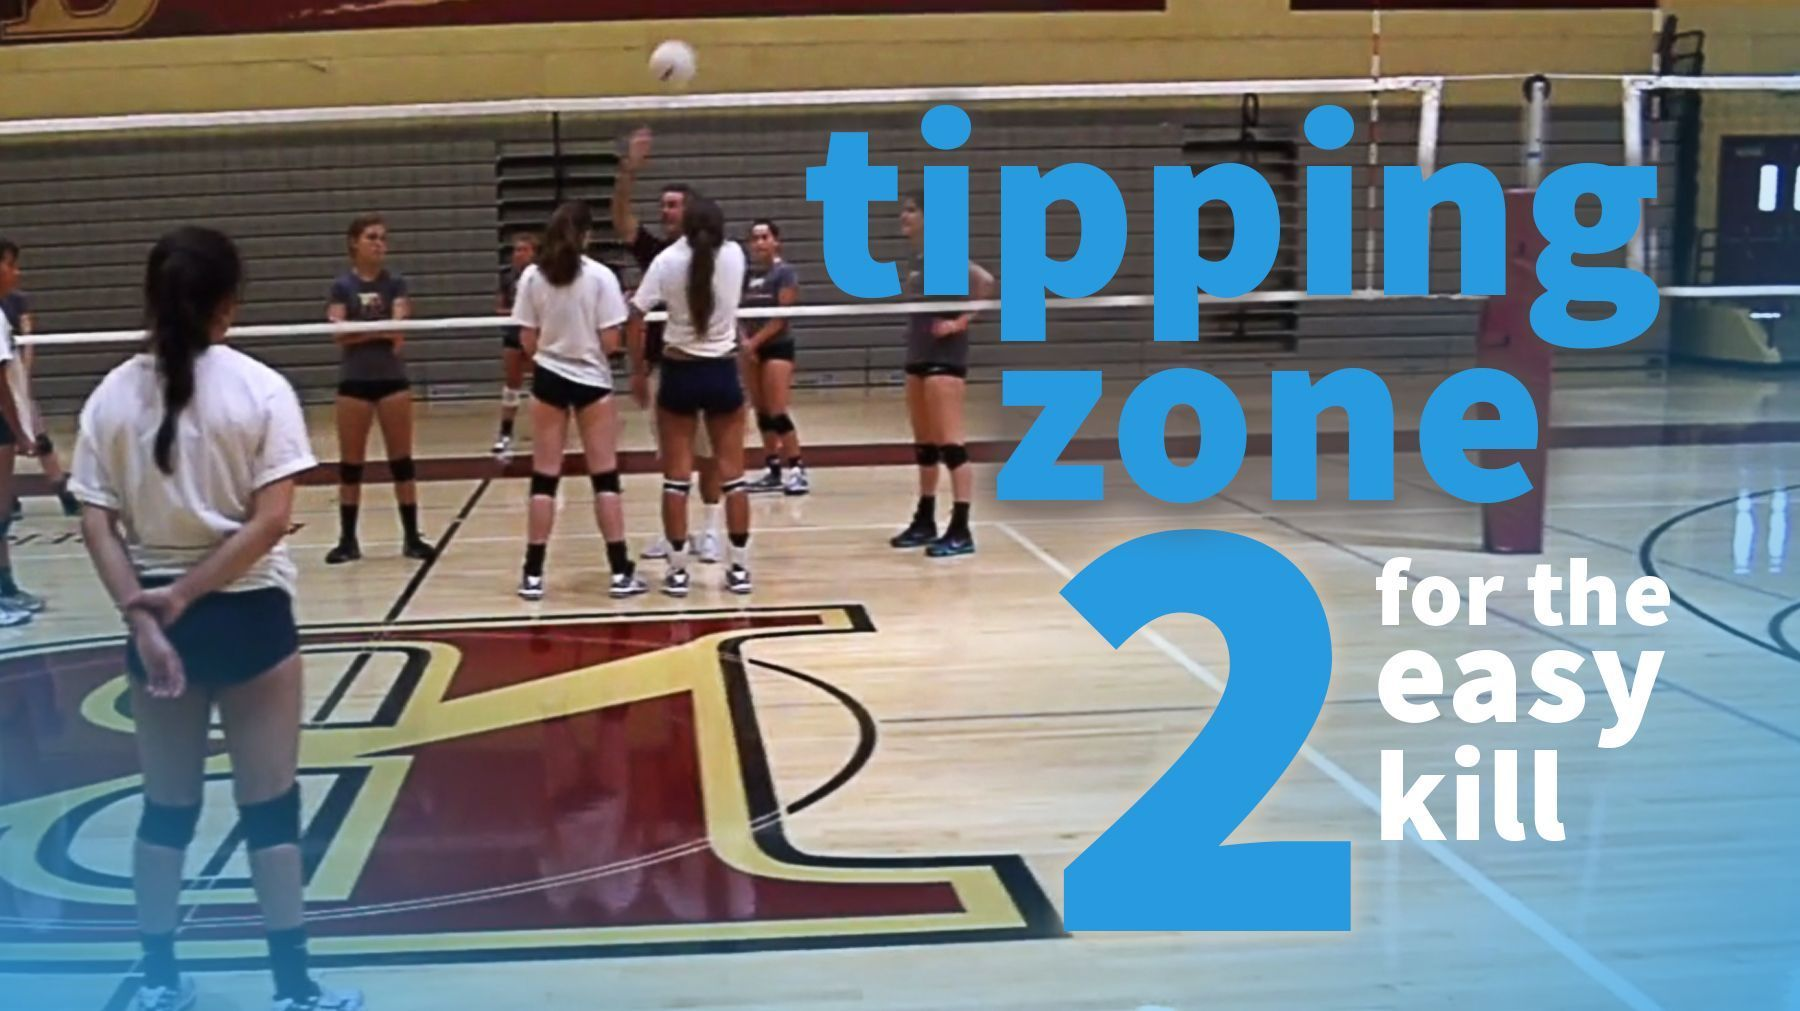 Strategy Tipping To Zone 2 Can Produce An Easy Kill The Art Of Coaching Volleyball Coaching Volleyball Volleyball Training Basketball Workouts